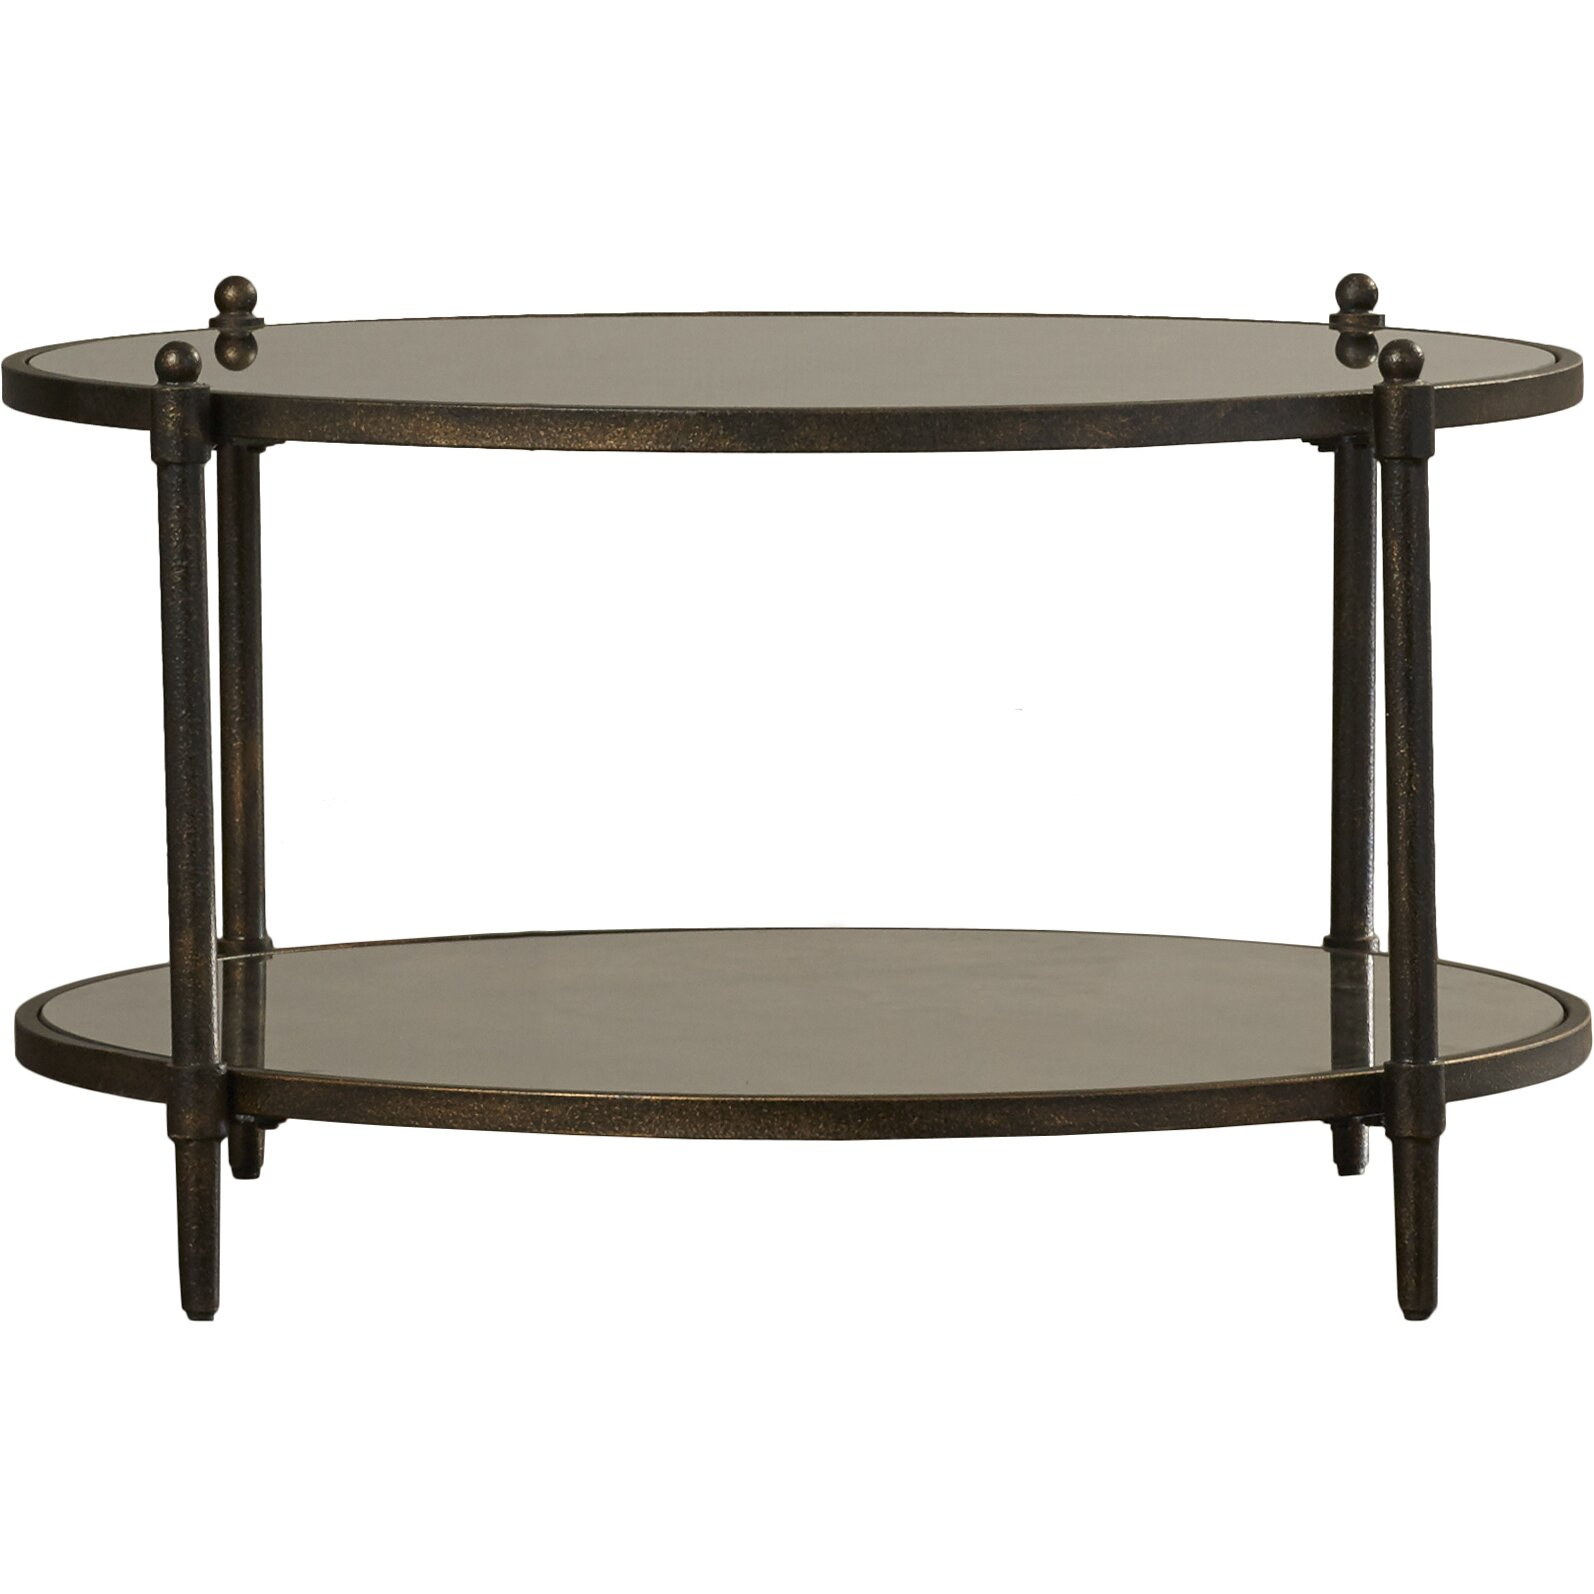 Wayfair Outdoor Coffee Table Darby Home Co Coffee Table Wayfair